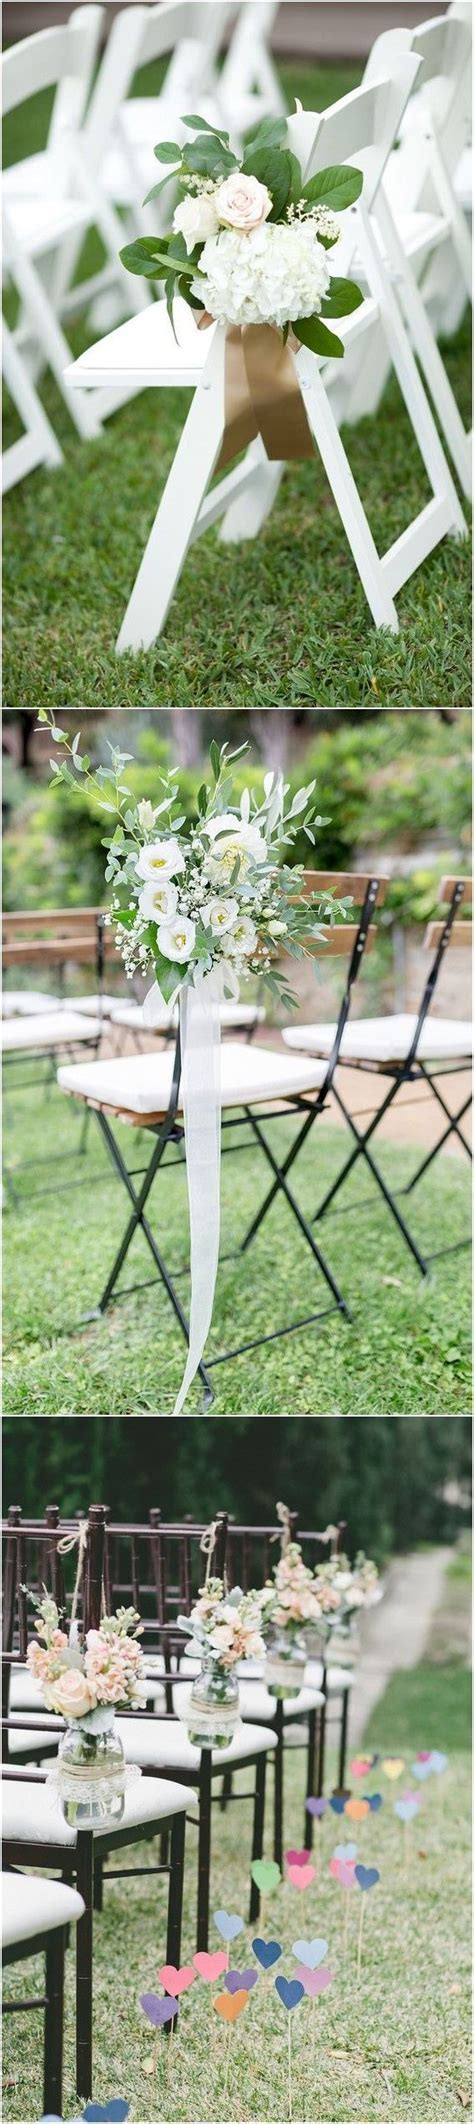 20 must wedding chair decorations for ceremony best 25 wedding chair decorations ideas on wedding chair covers chair decoration